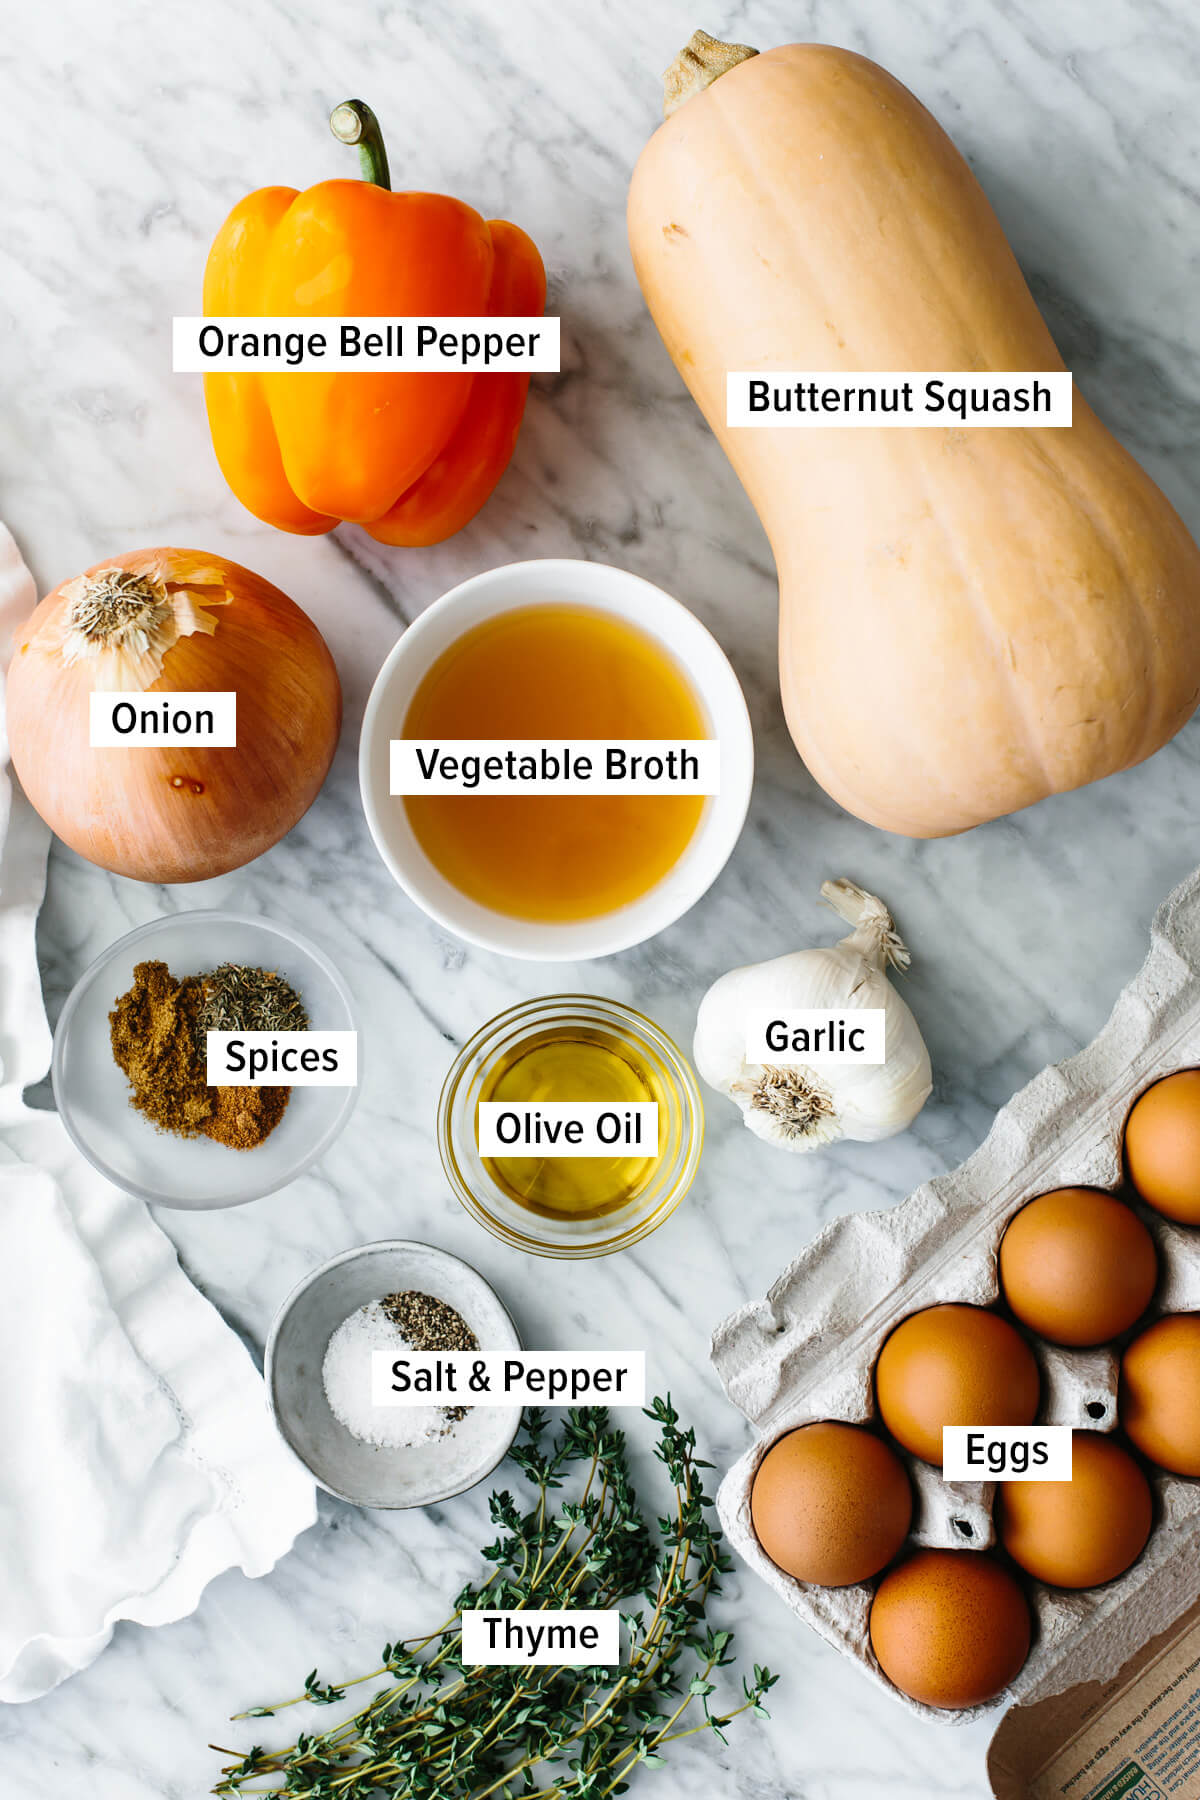 Ingredients for an orange shakshuka laid out on a table.